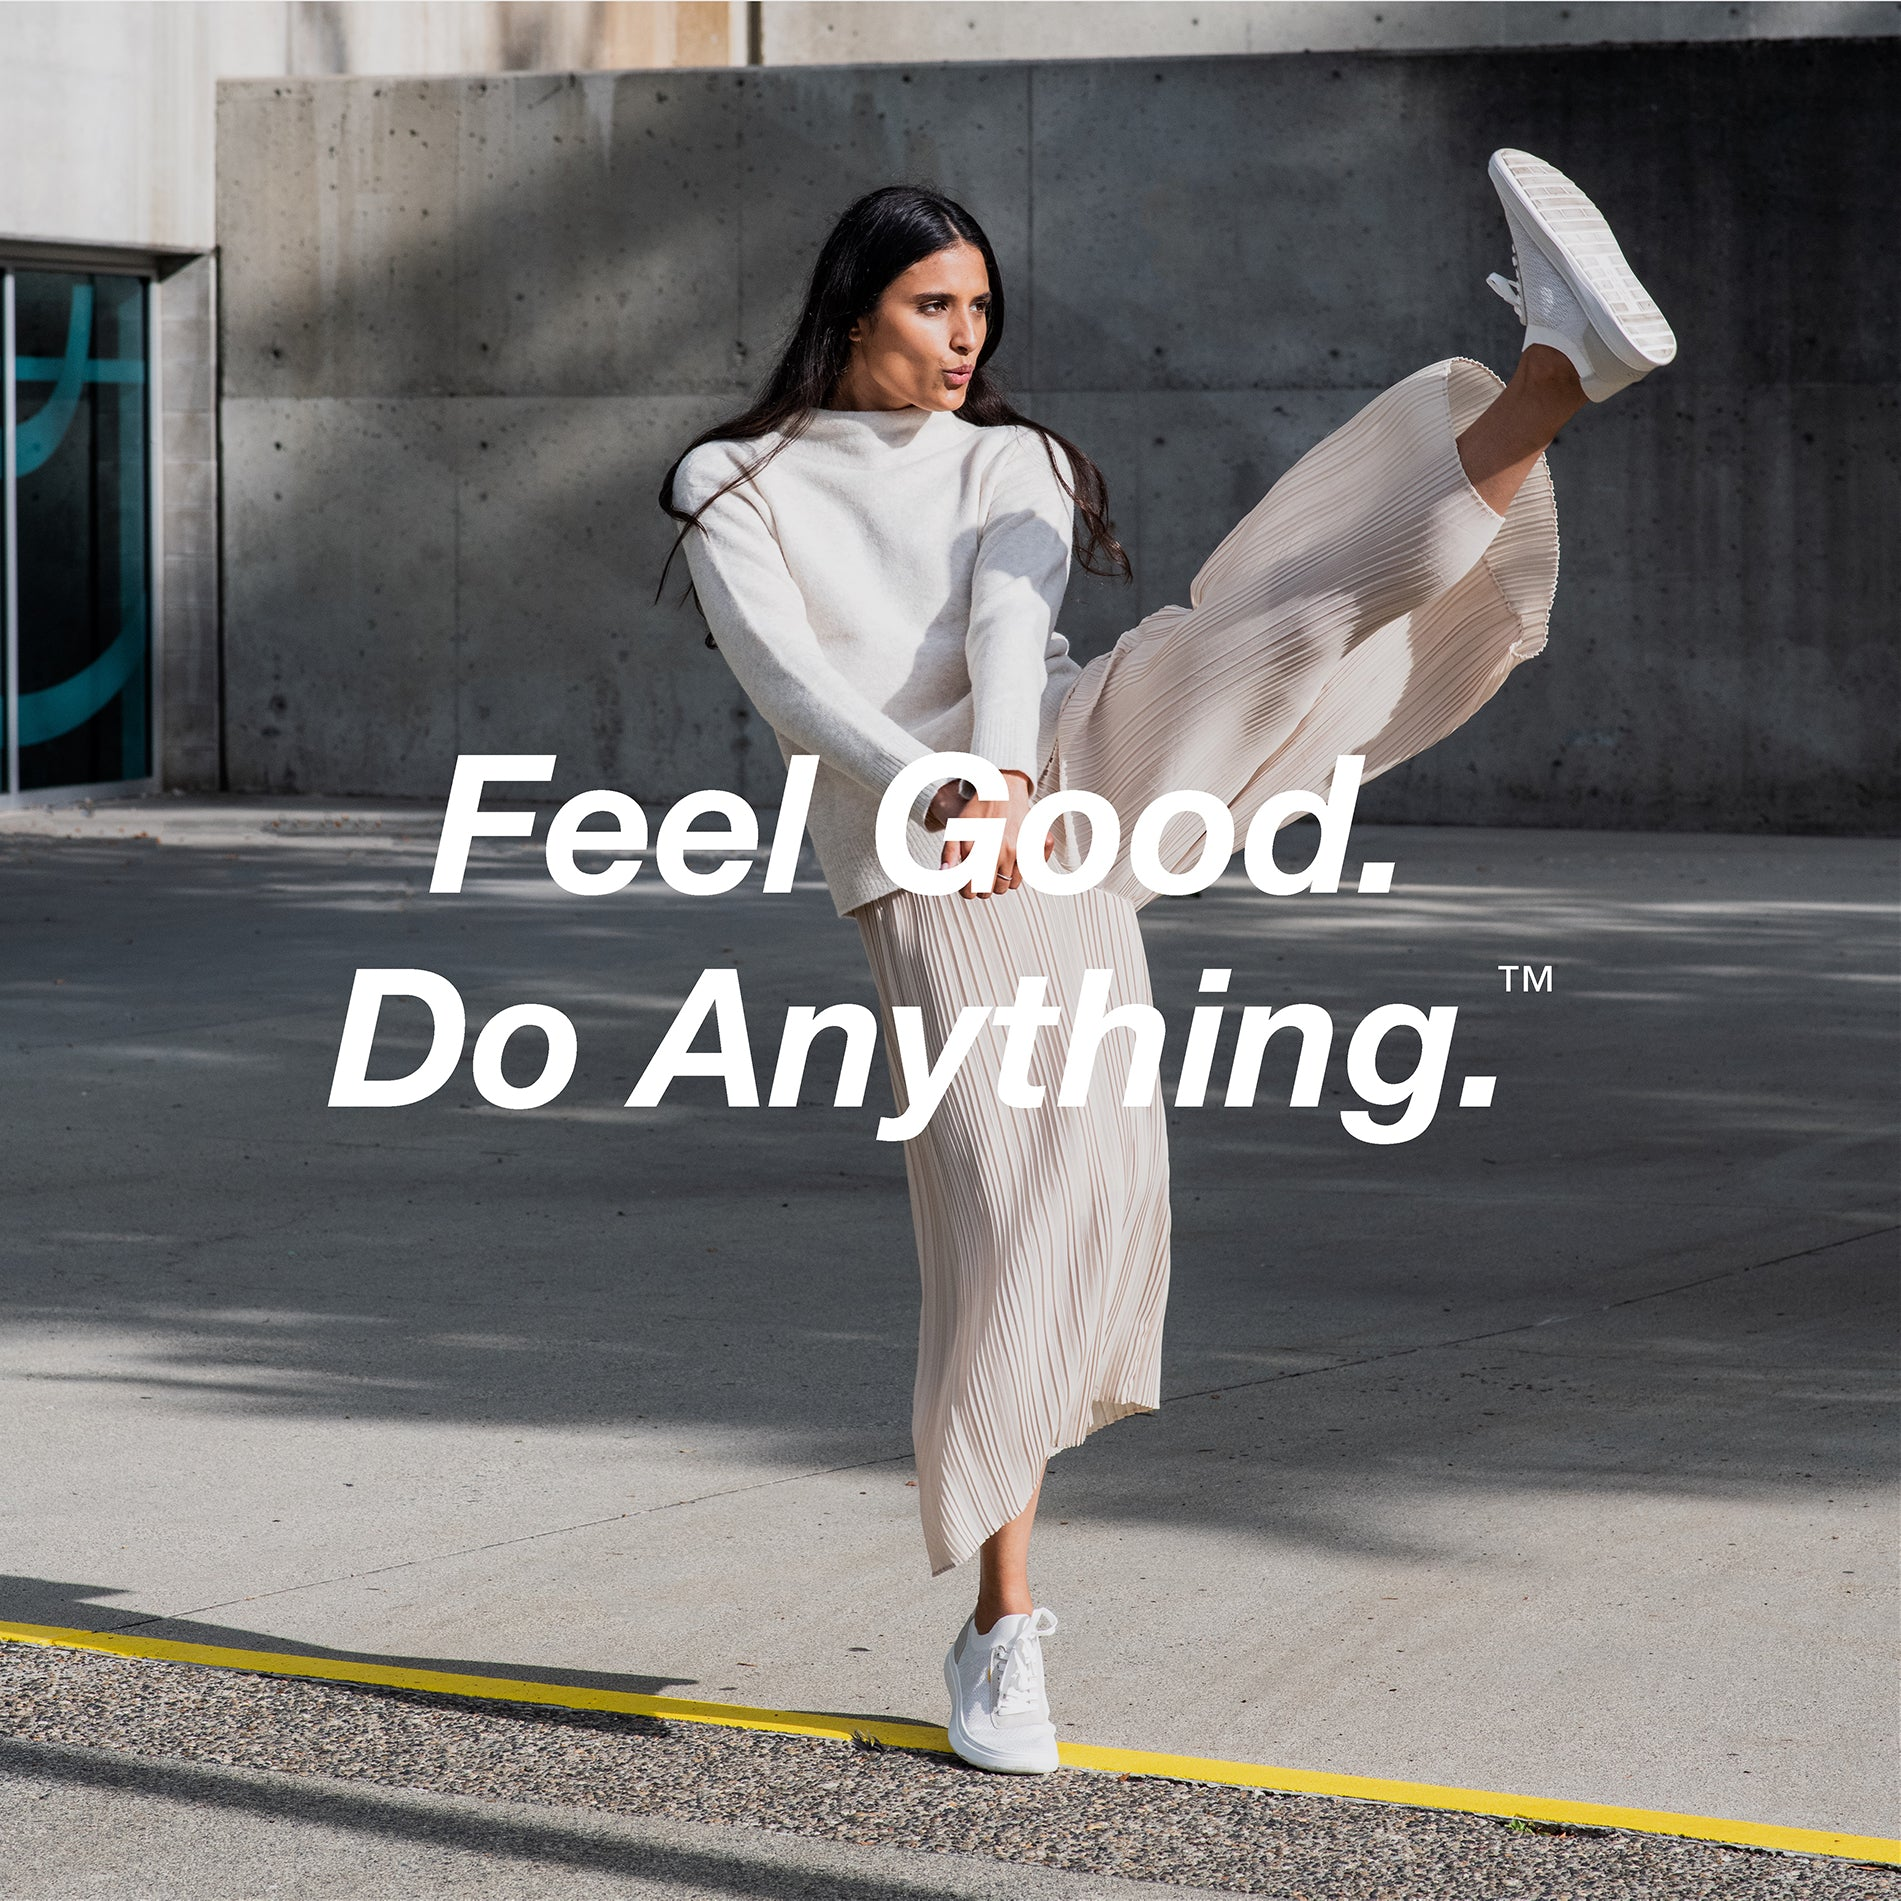 Introducing Feel Good. Do Anything.™